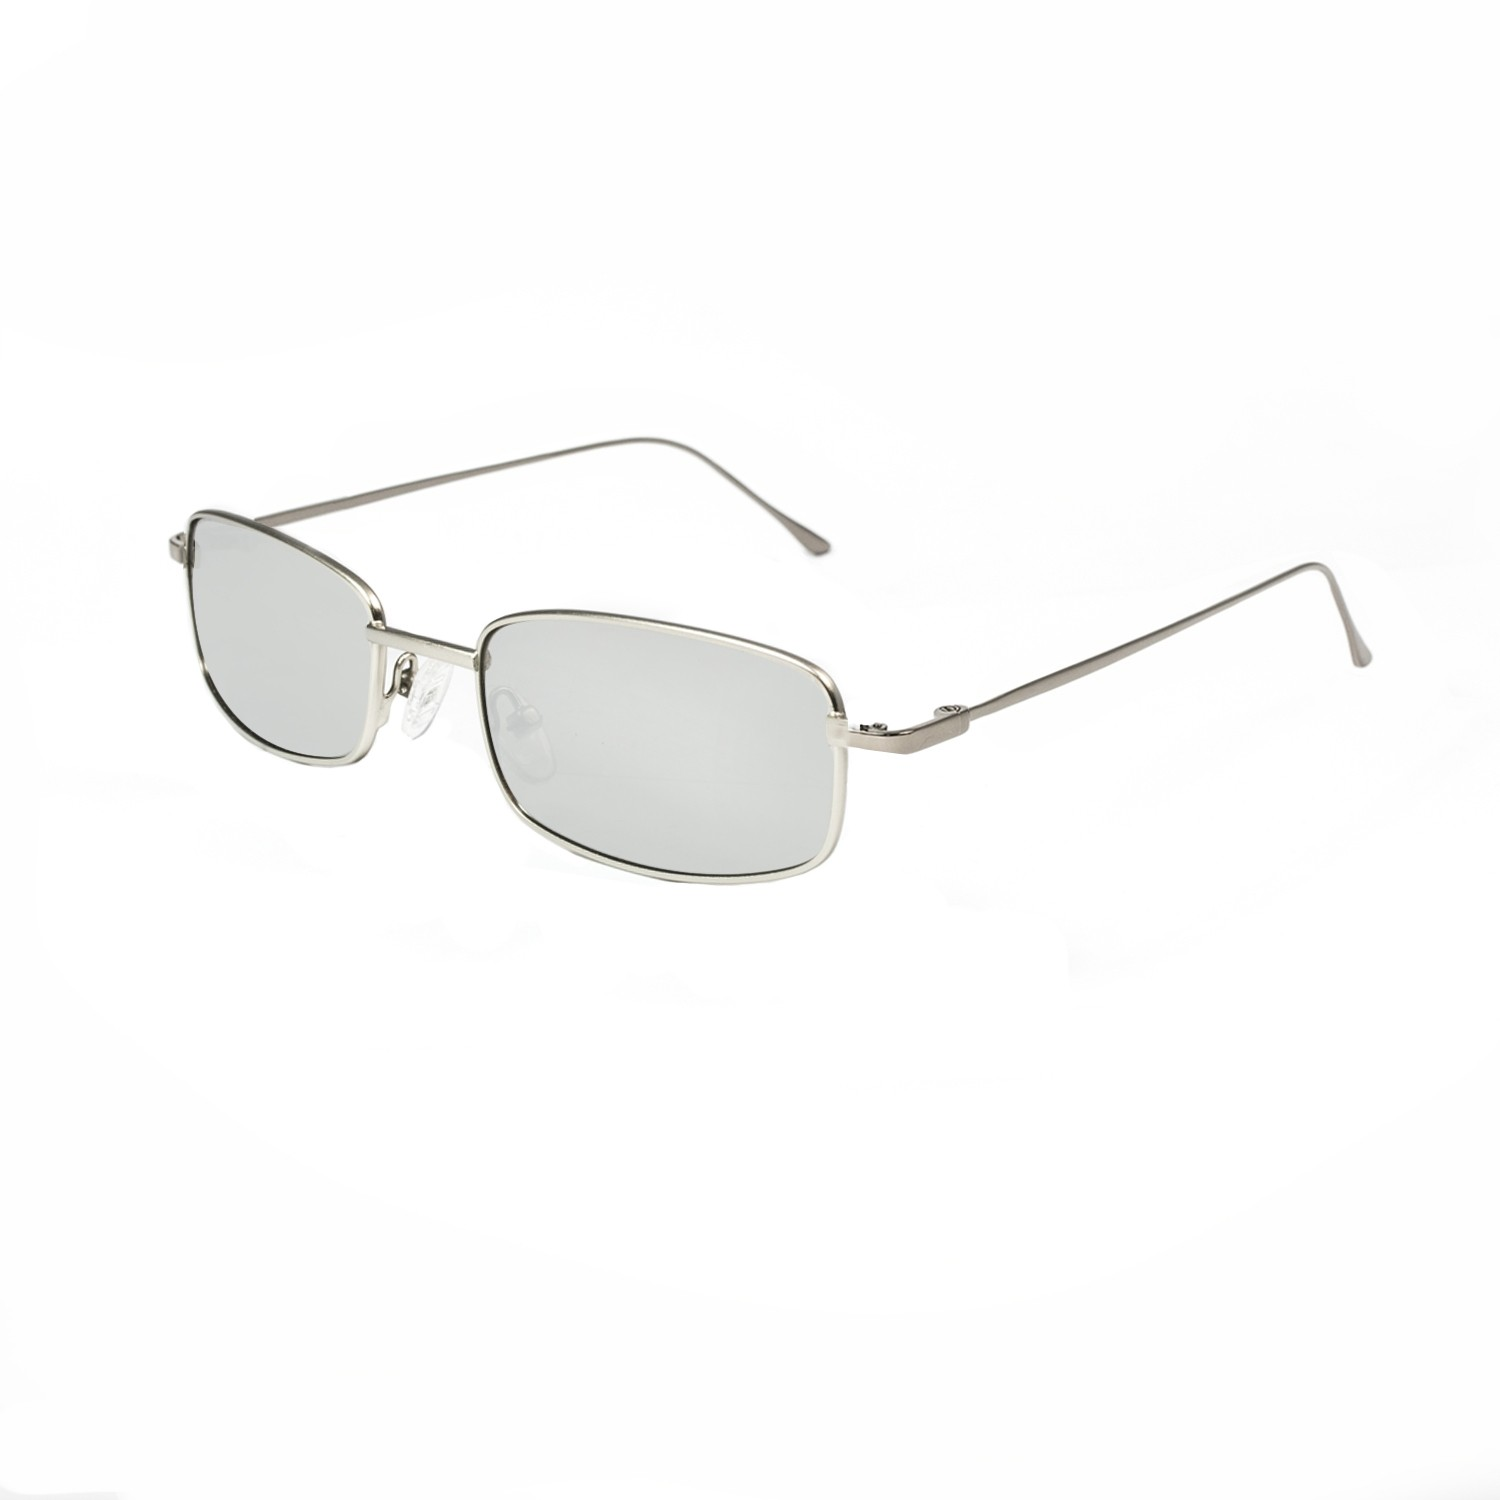 DYLAN silver metal frame with silver revo lens